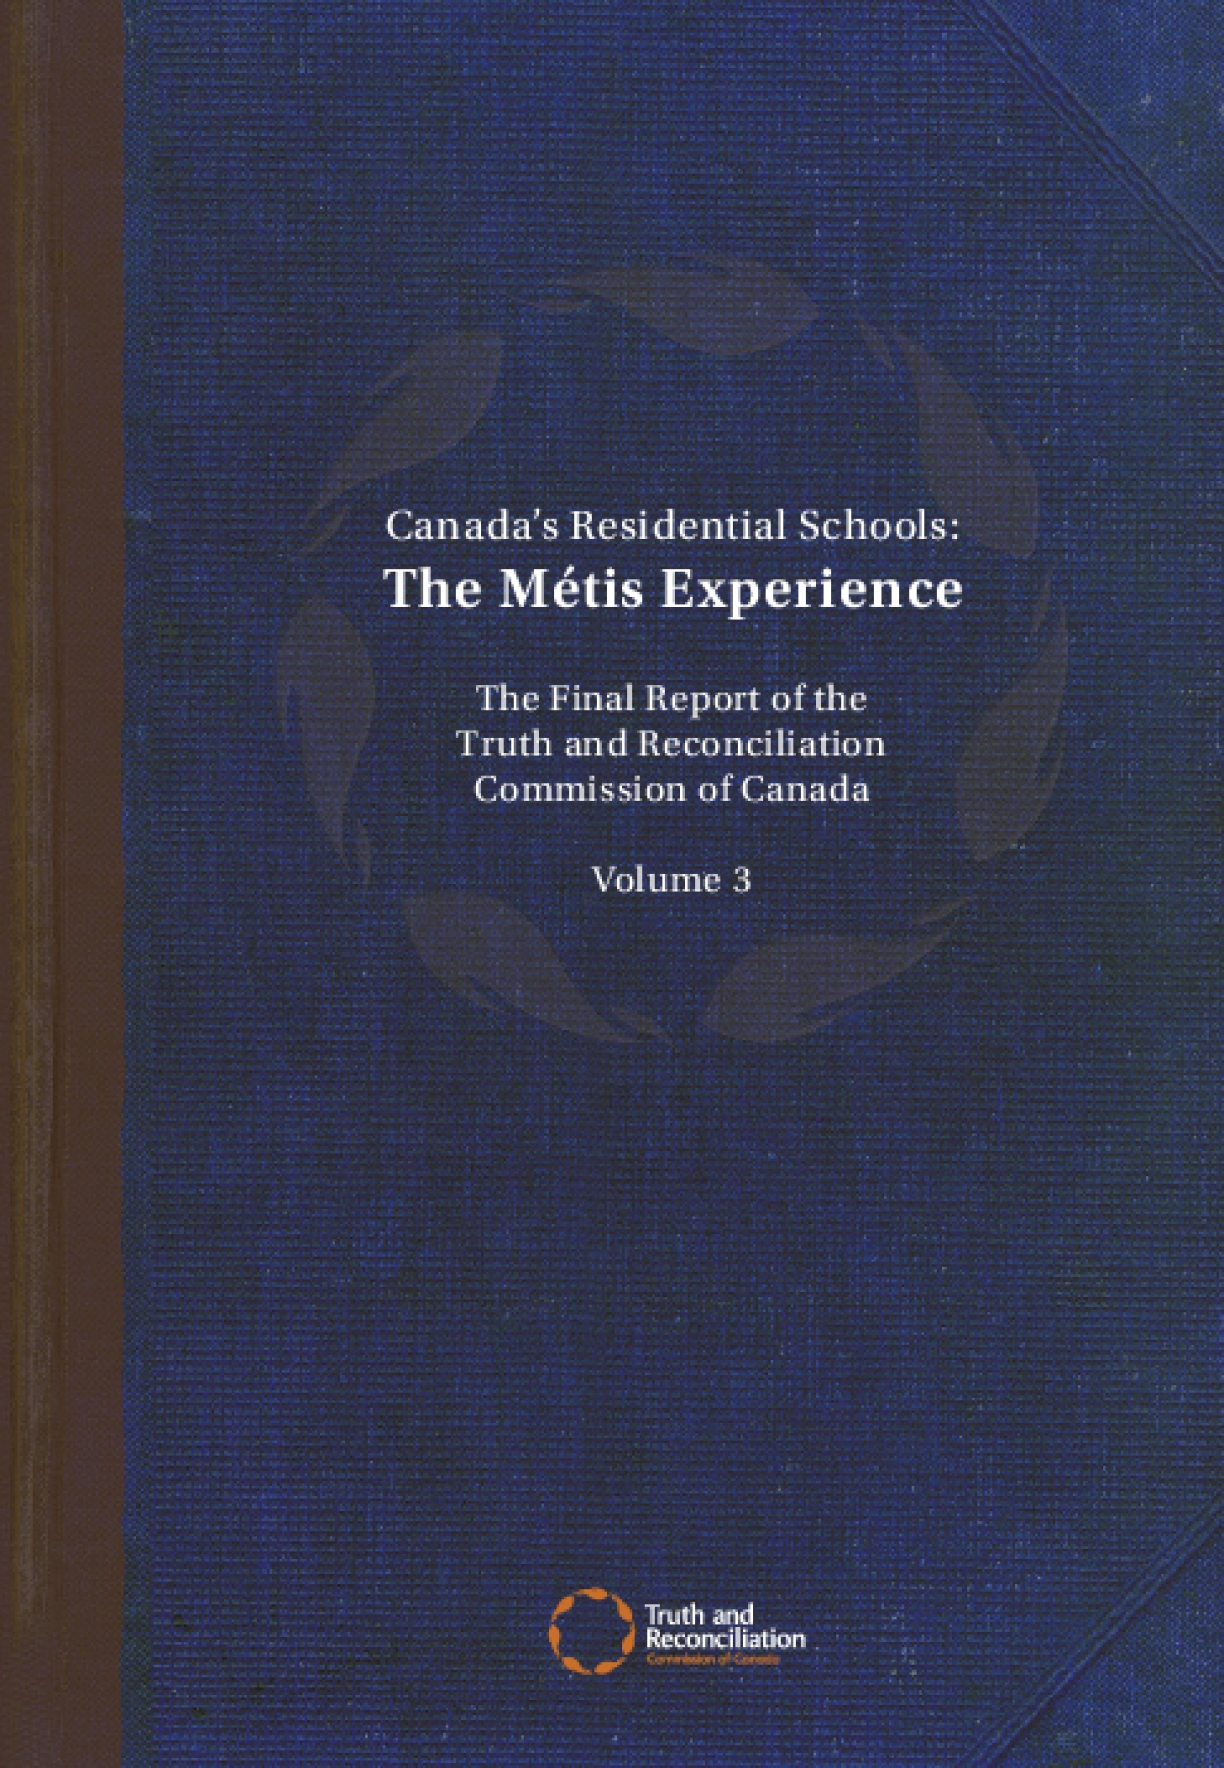 Canada's Residential Schools: The Metis Experience